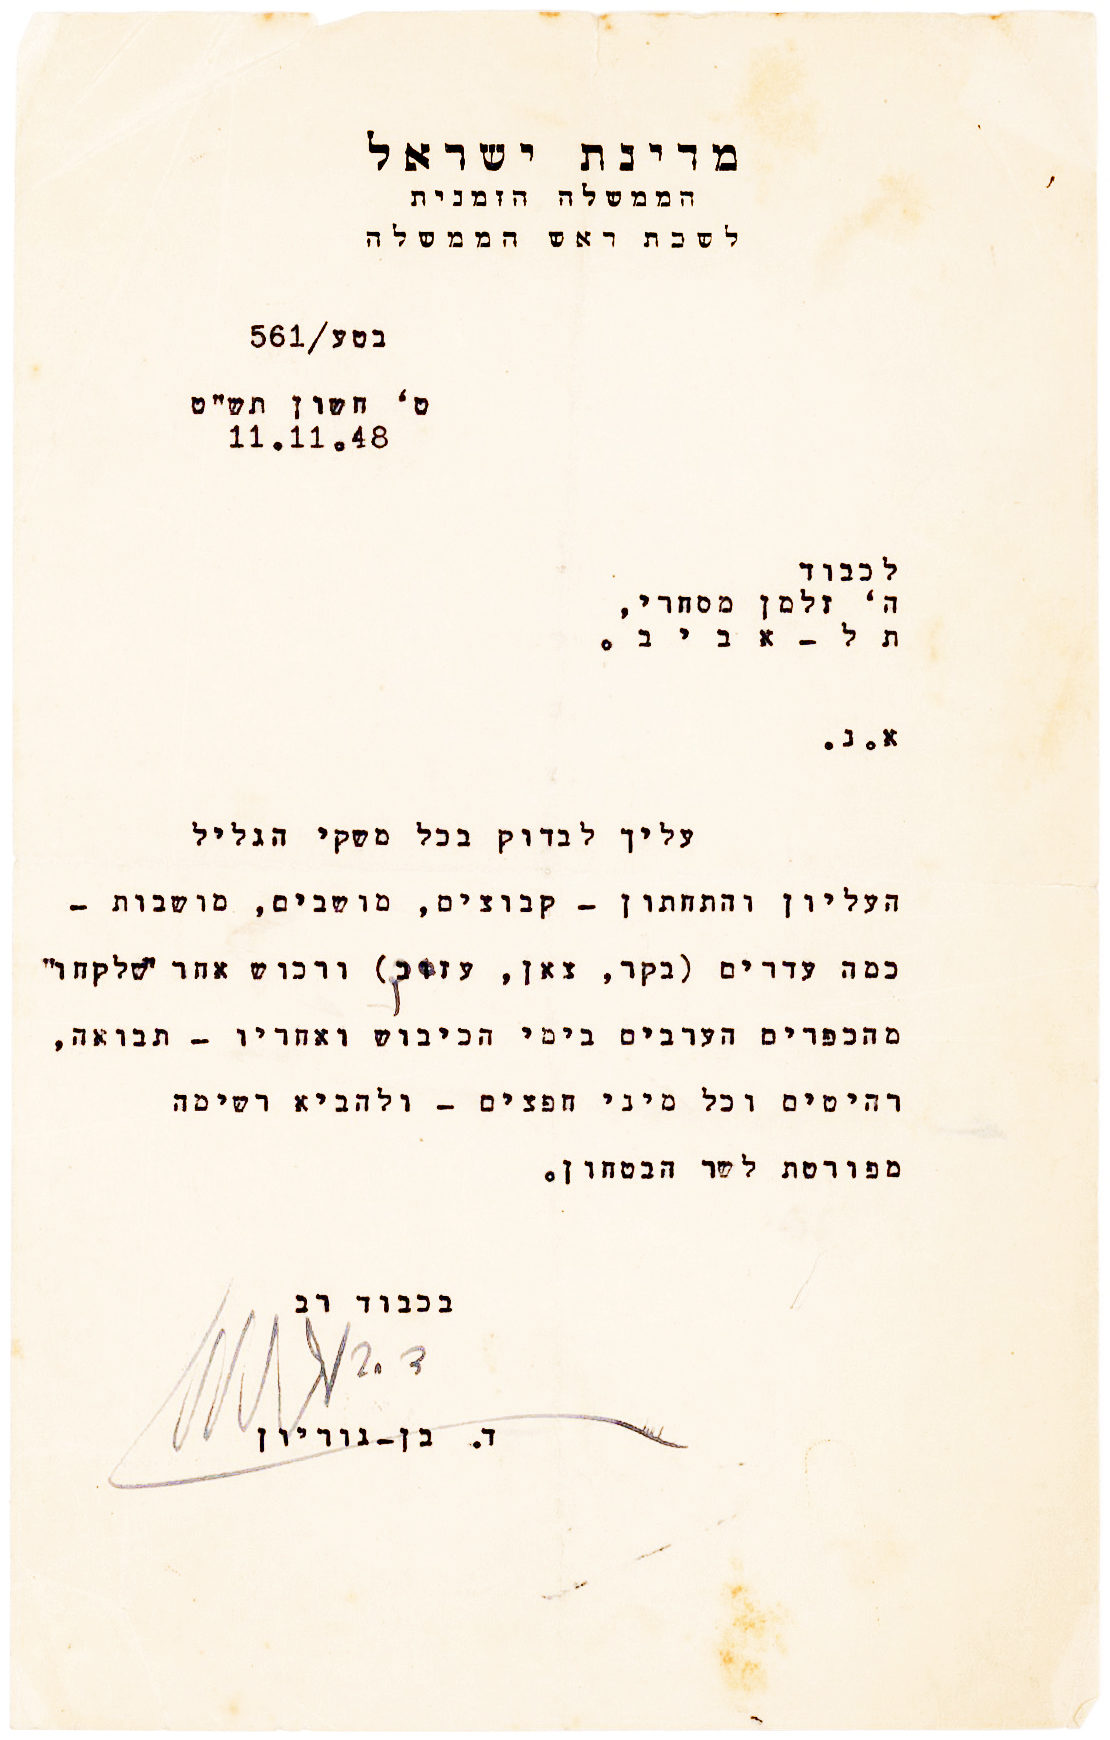 """In 1948 Prime Minister Ben-Gurion Orders an Investigation into the: """"herds (cattle, sheep, goats) and other possessions that 'were taken' from the Arab villages during  and after the occupation…"""""""